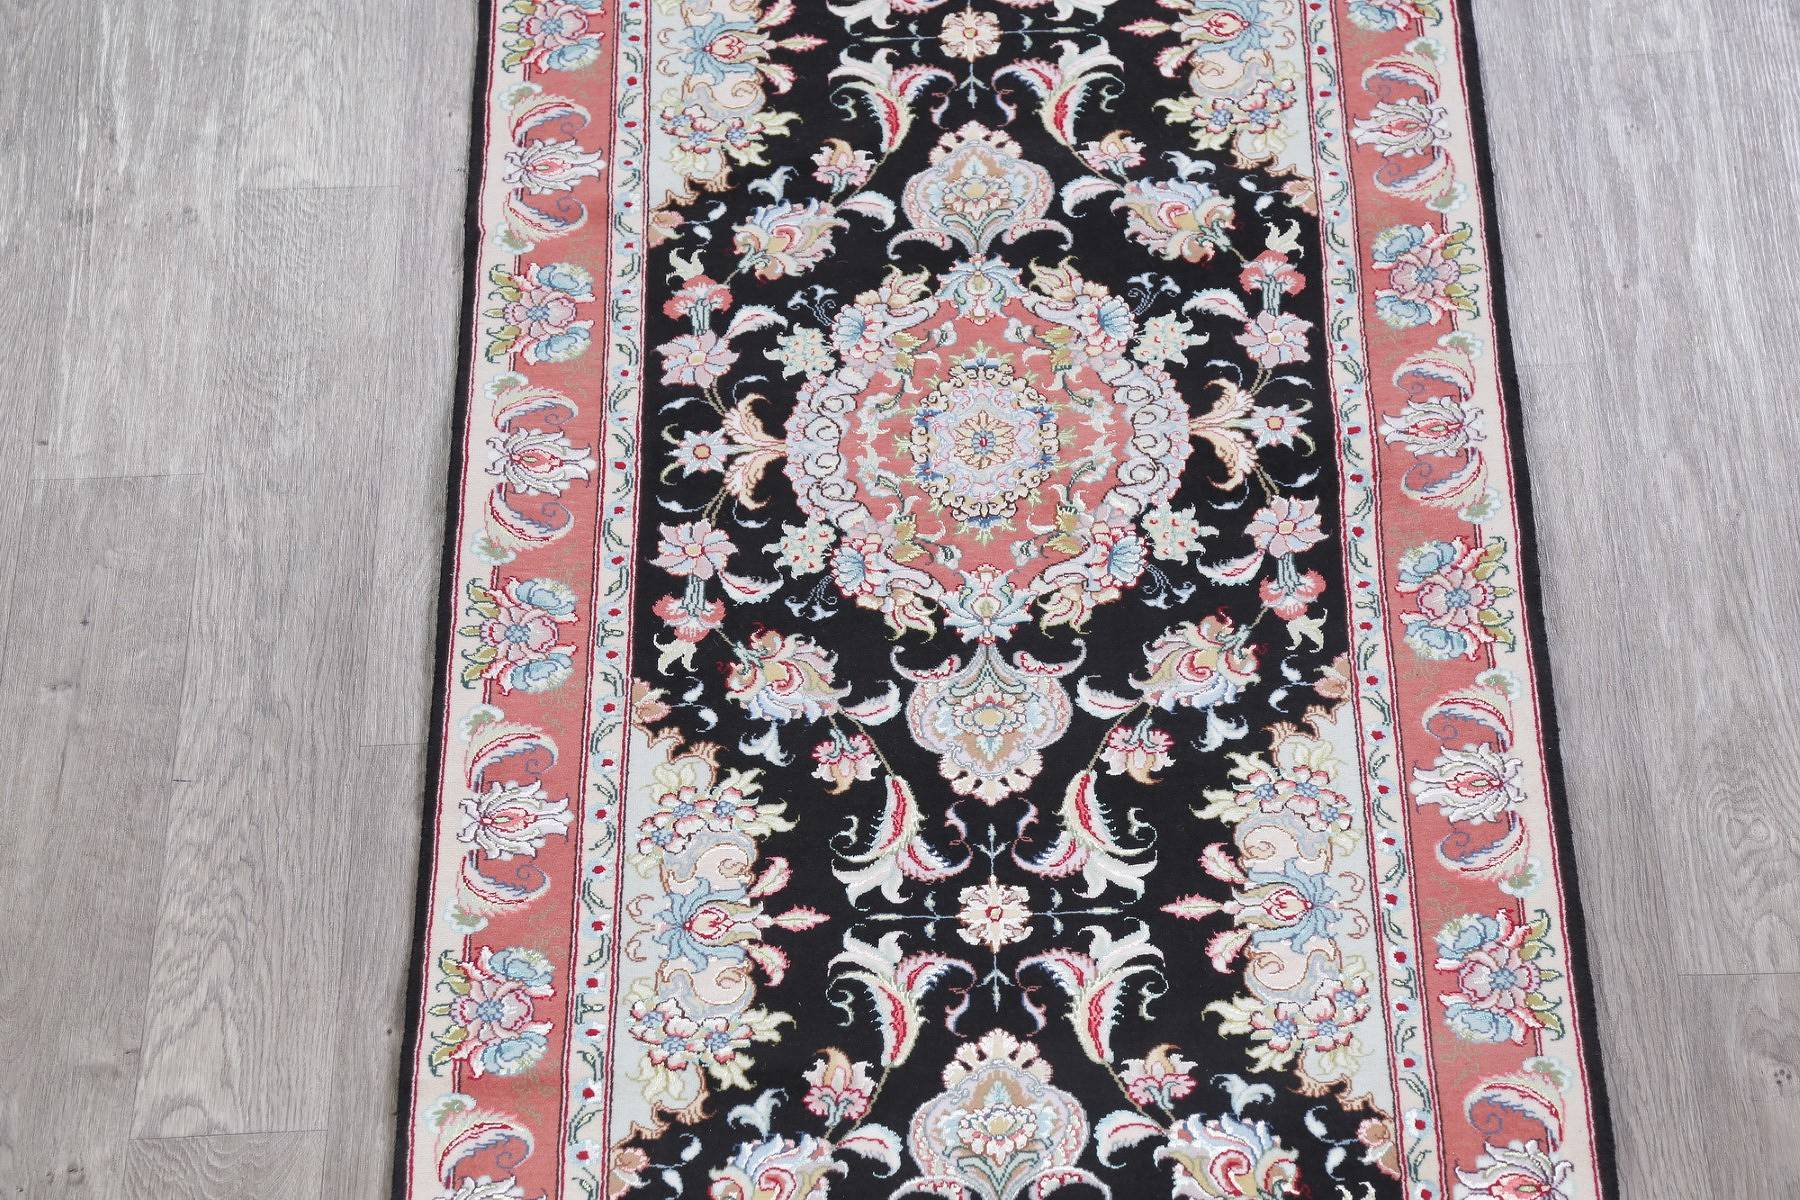 Vegetable Dye Floral Black Tabriz Persian Hand-Knotted Runner Rug 3x17